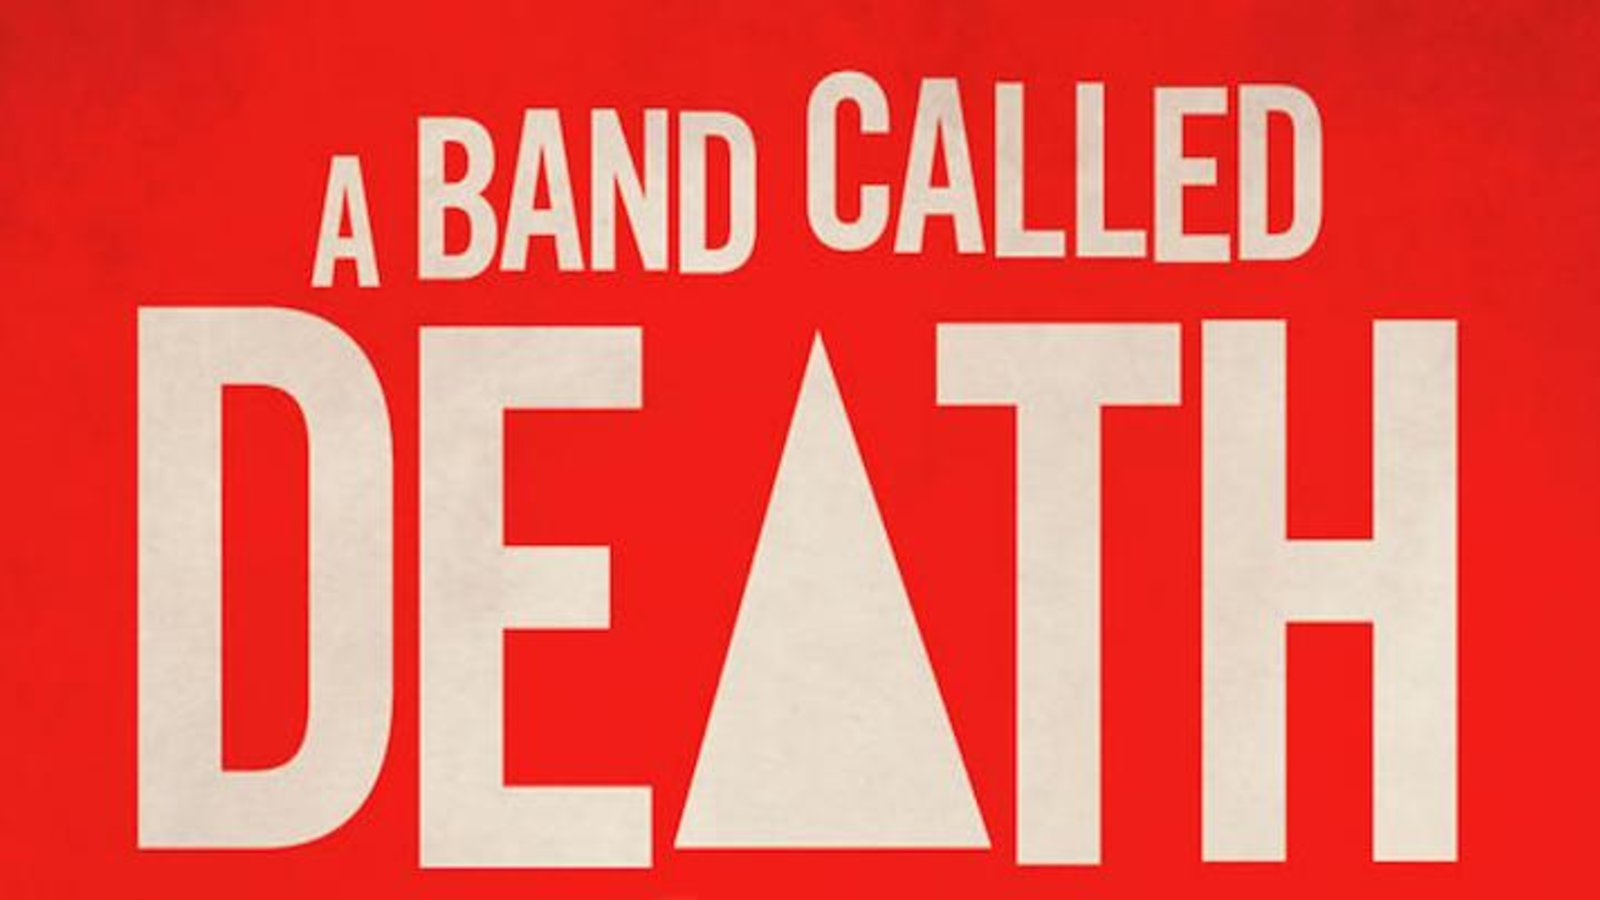 A Band Called Death - A 1970's Punk Trio